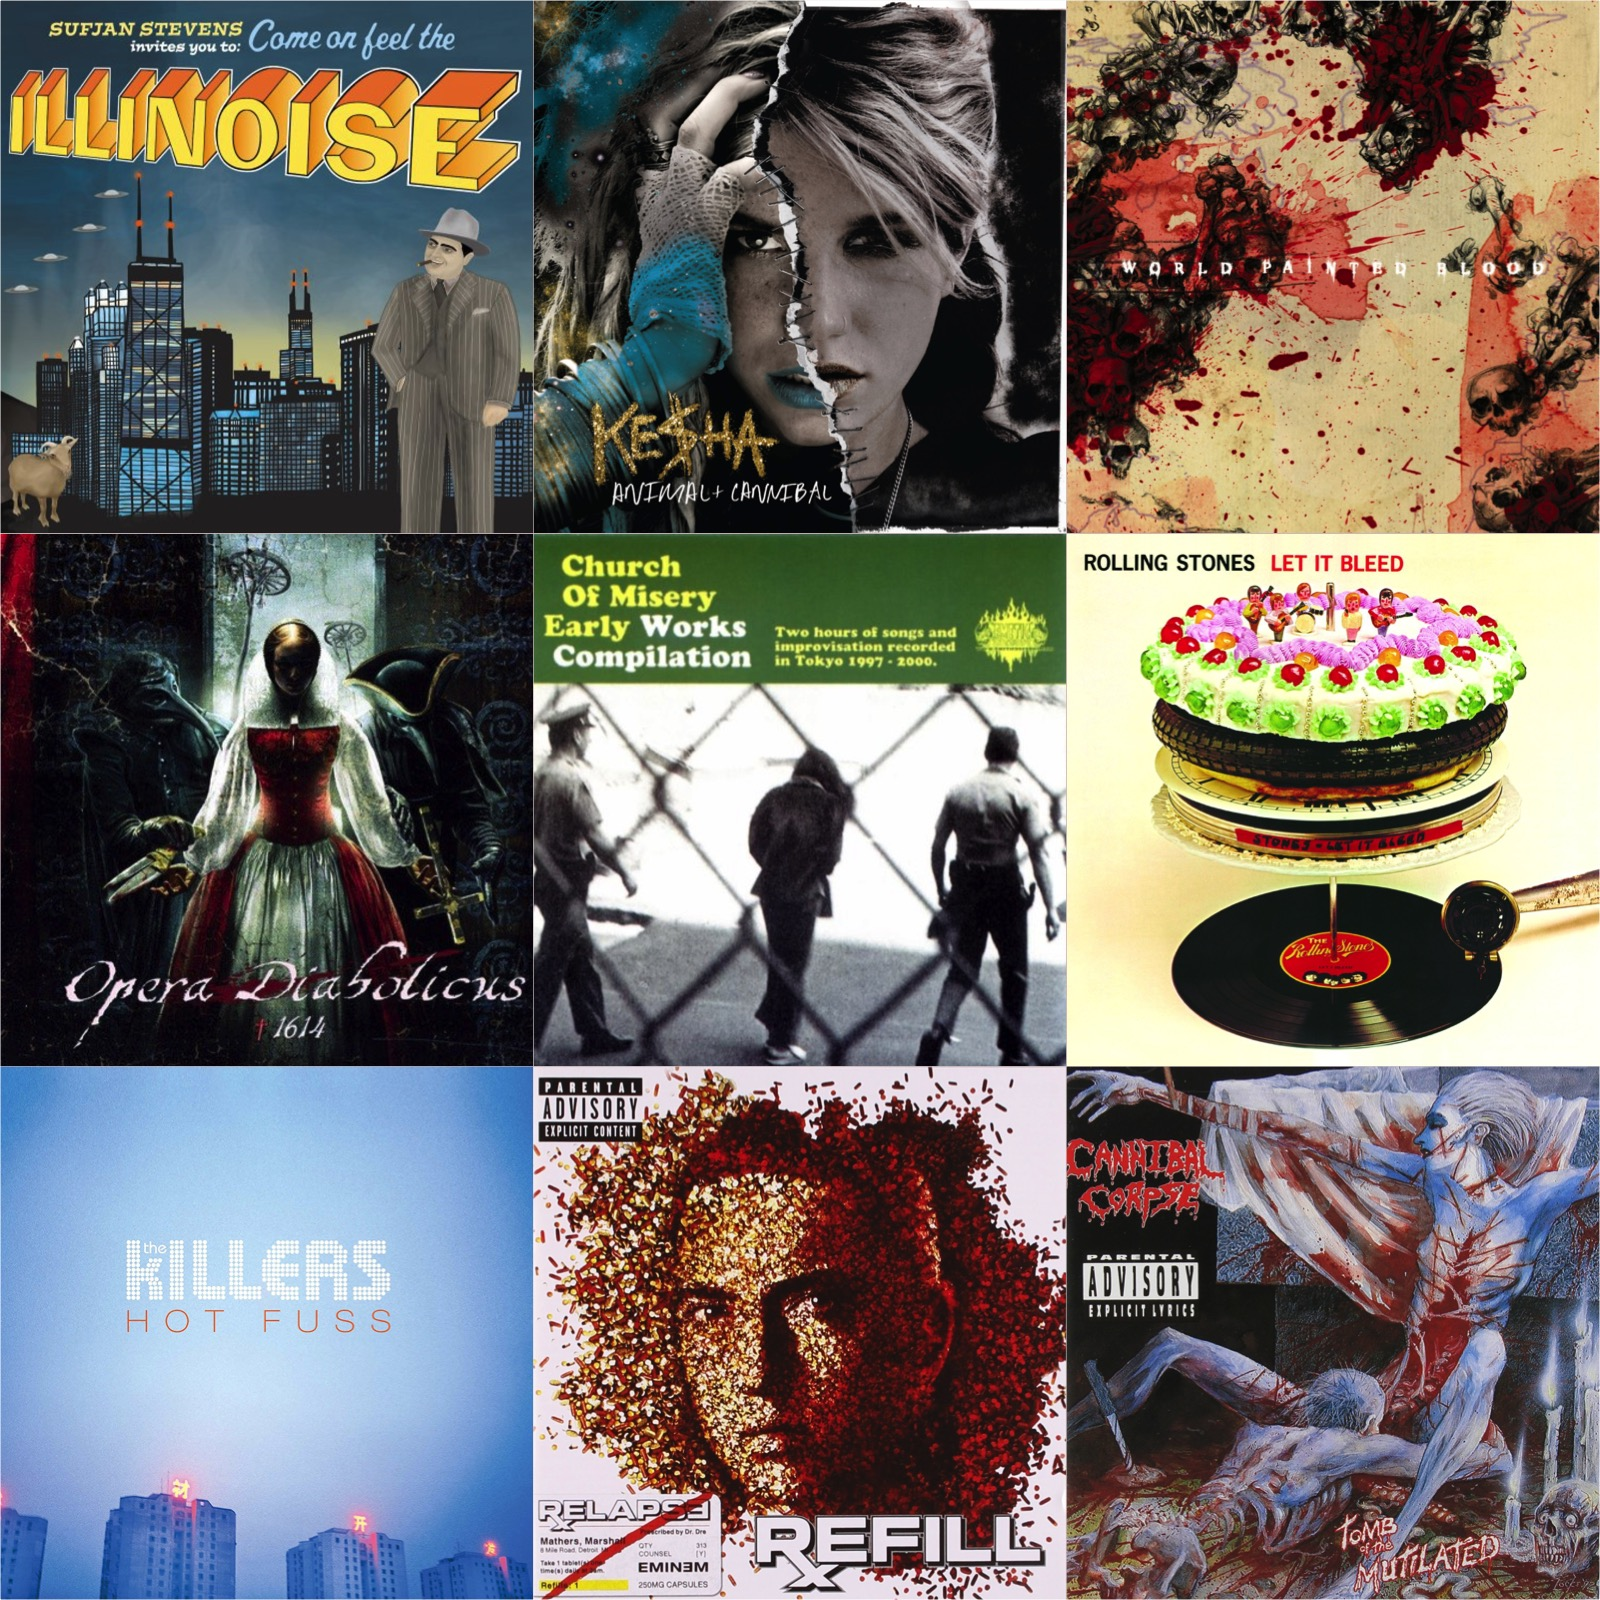 18 Chilling Songs About Serial Killers | Playlist